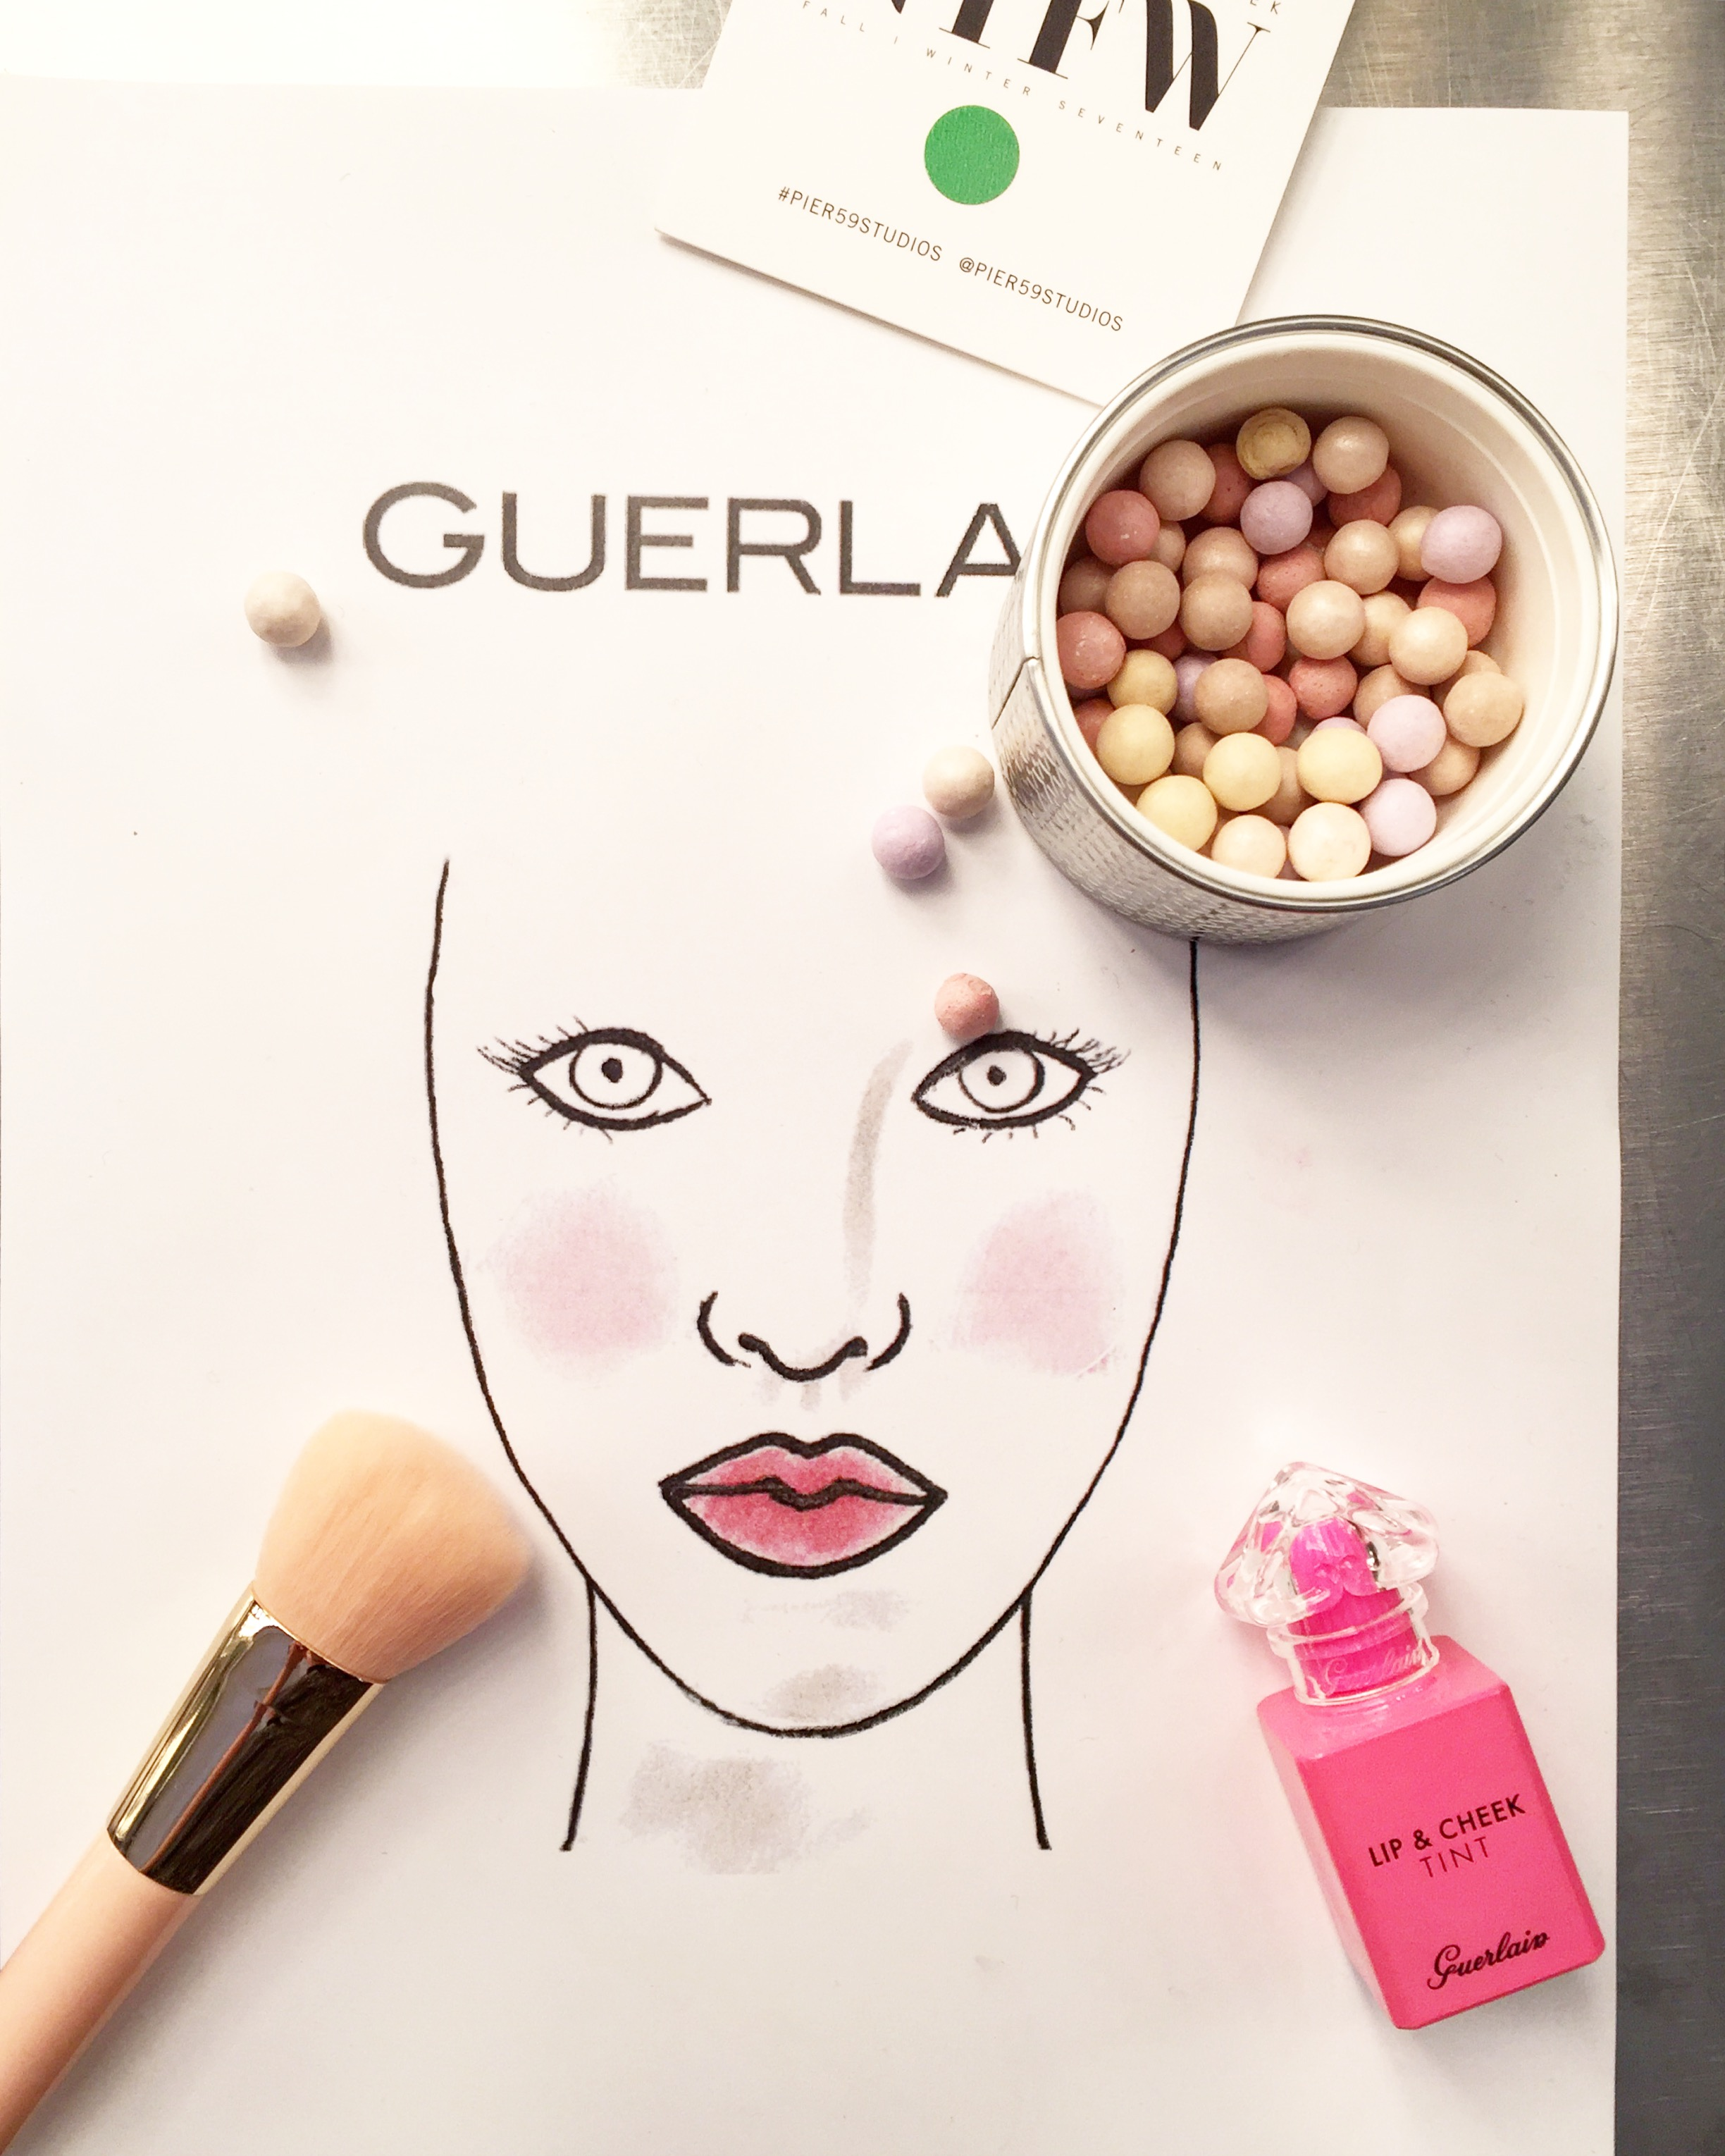 Backstage at NYFW with Guerlain, this is just one of the pretty looks created